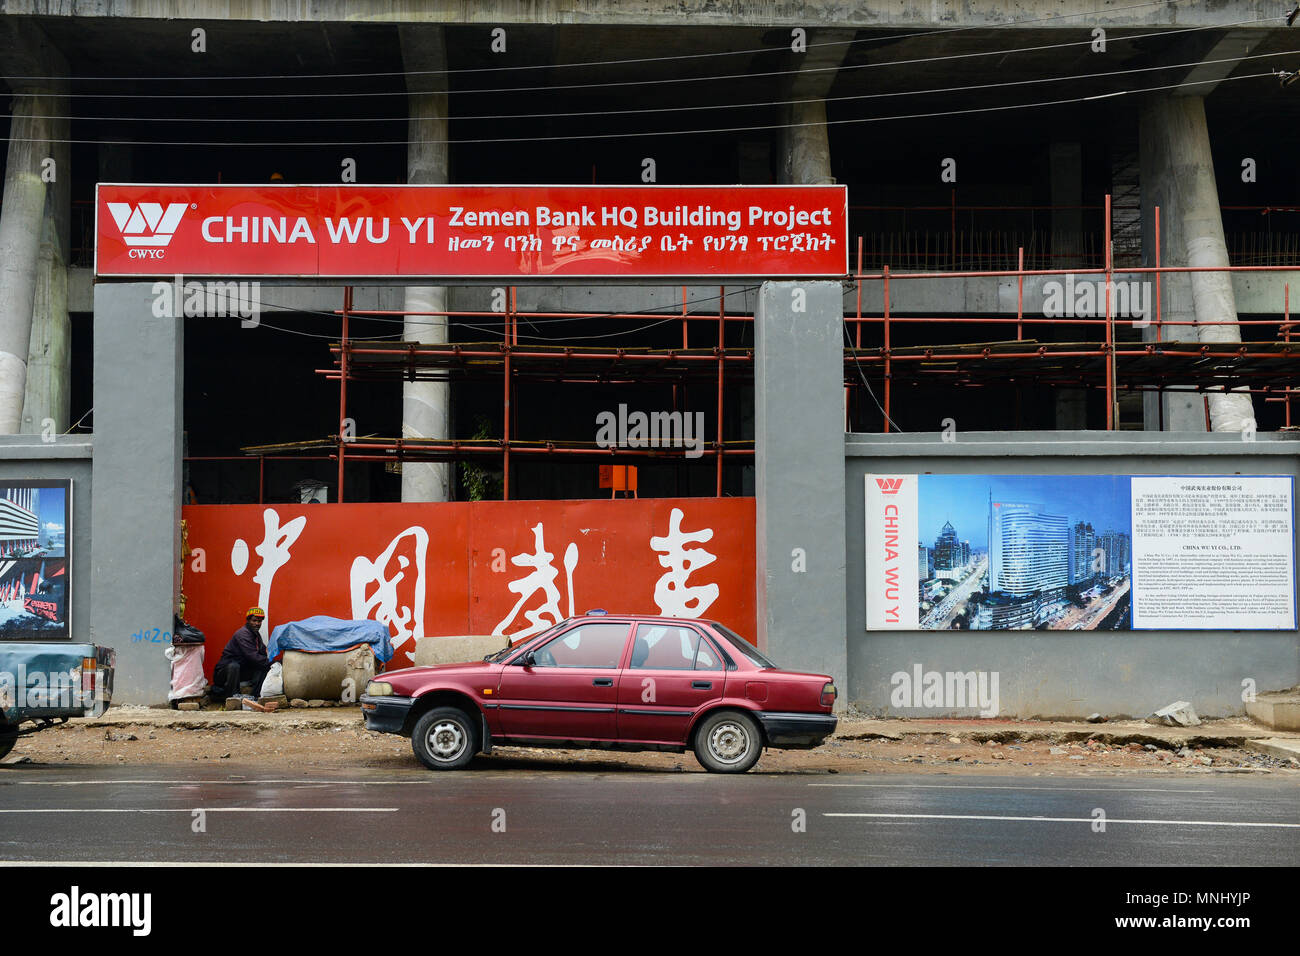 ETHIOPIA , Addis Ababa, chinese construction site of builder China Wu Yi, office tower and Zemen Bank HQ building under construction / AETHIOPIEN, Addis Abeba, Baustellen chinesischer Baufirmen - Stock Image